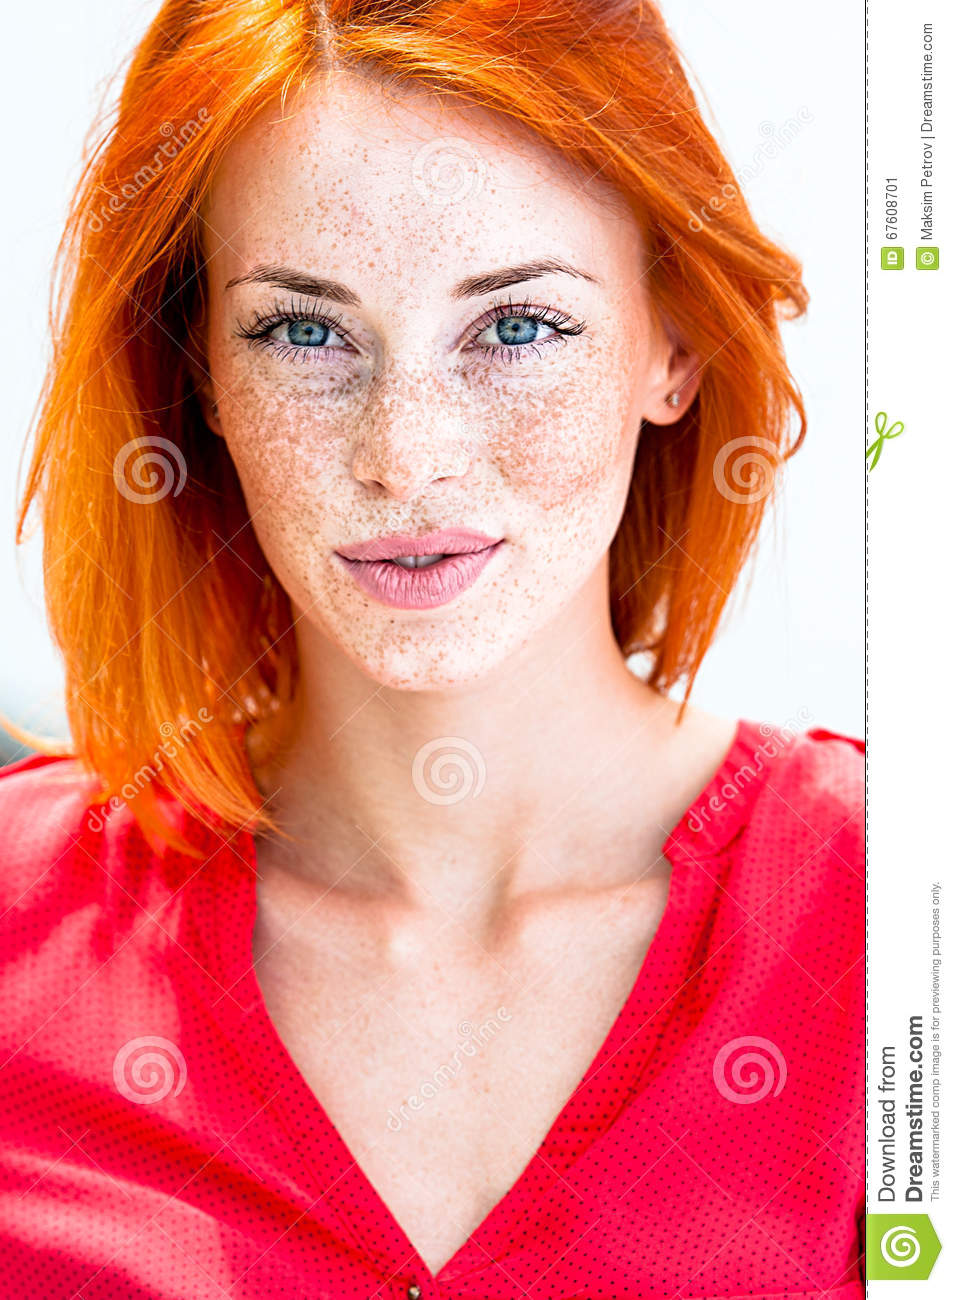 Beautiful Redhead Freckled Woman Smiling Seductive Biting  : beautiful redhead freckled woman smiling seductive biting lips her 67608701 from www.dreamstime.com size 955 x 1300 jpeg 192kB